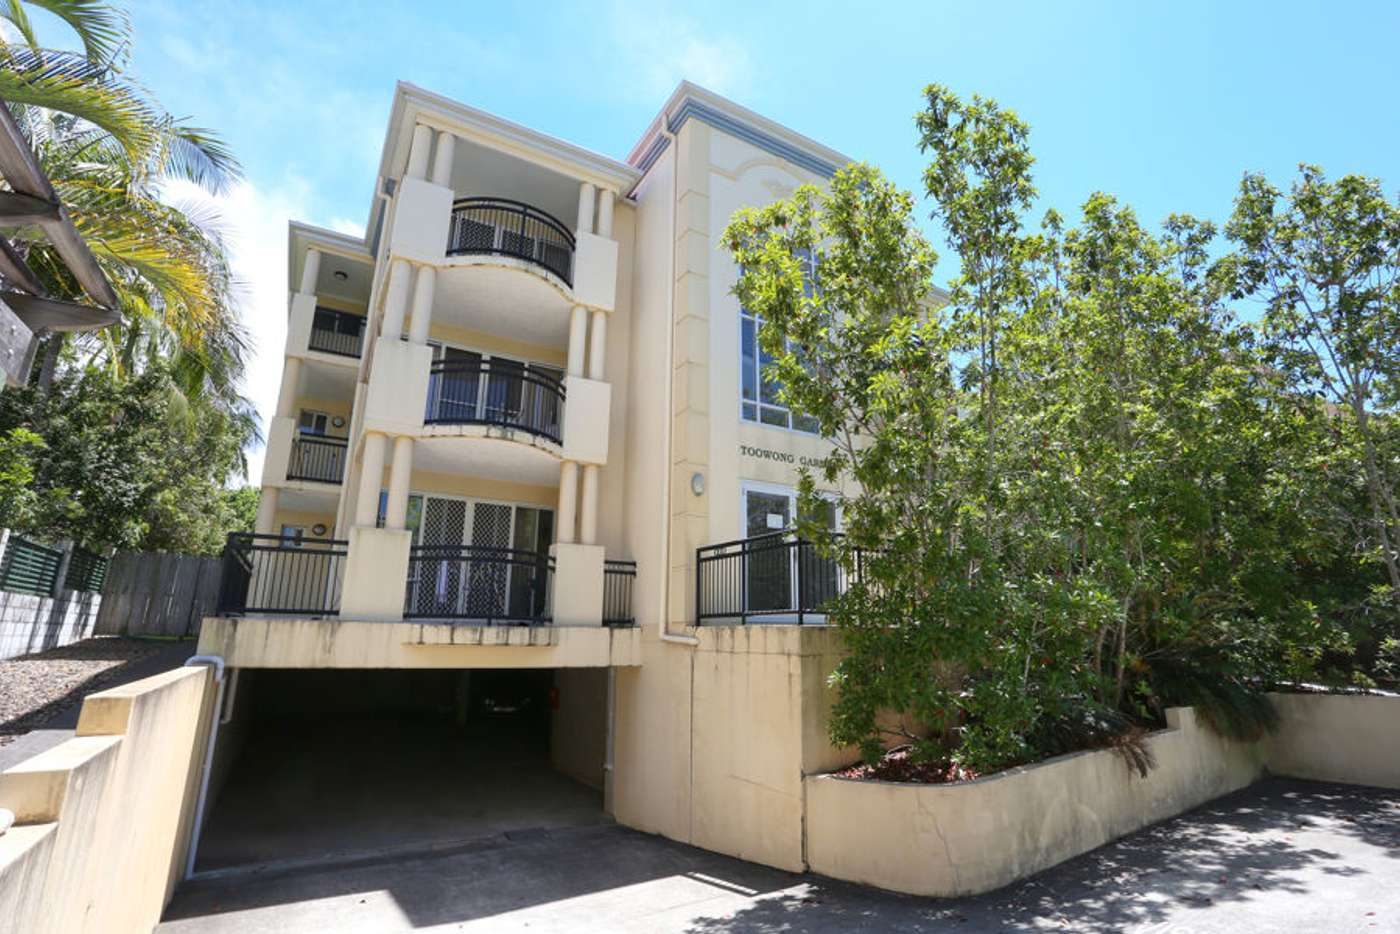 Main view of Homely apartment listing, 3/10 Lissner street, Toowong QLD 4066